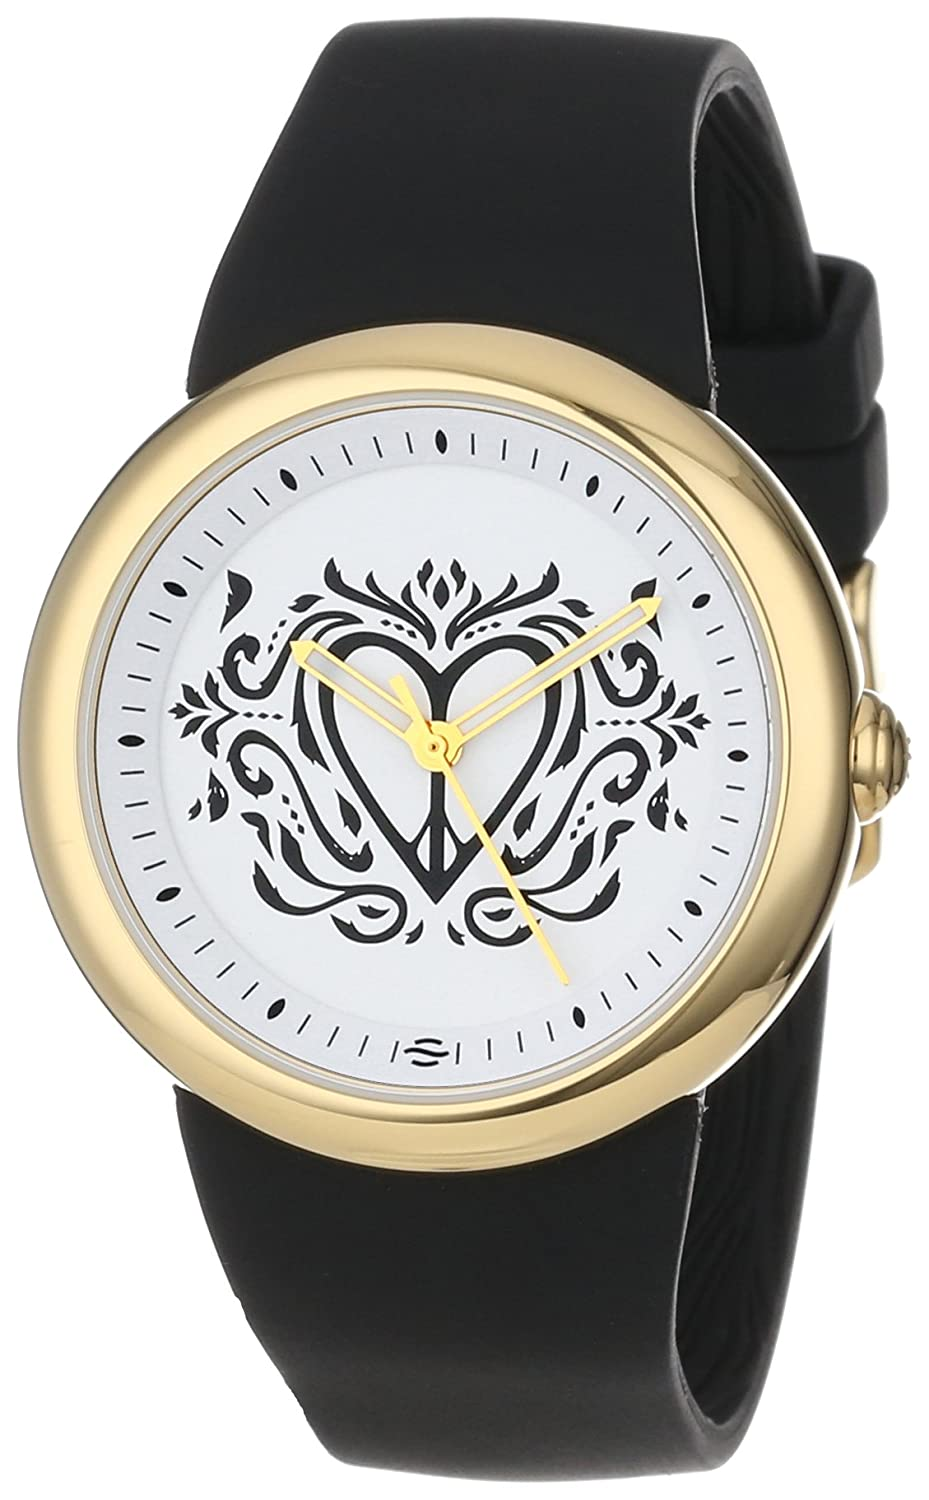 PeaceLove Unisex F36G-PL-B Round Gold Tone Black Silicone Strap and Clark Art Dial Watch